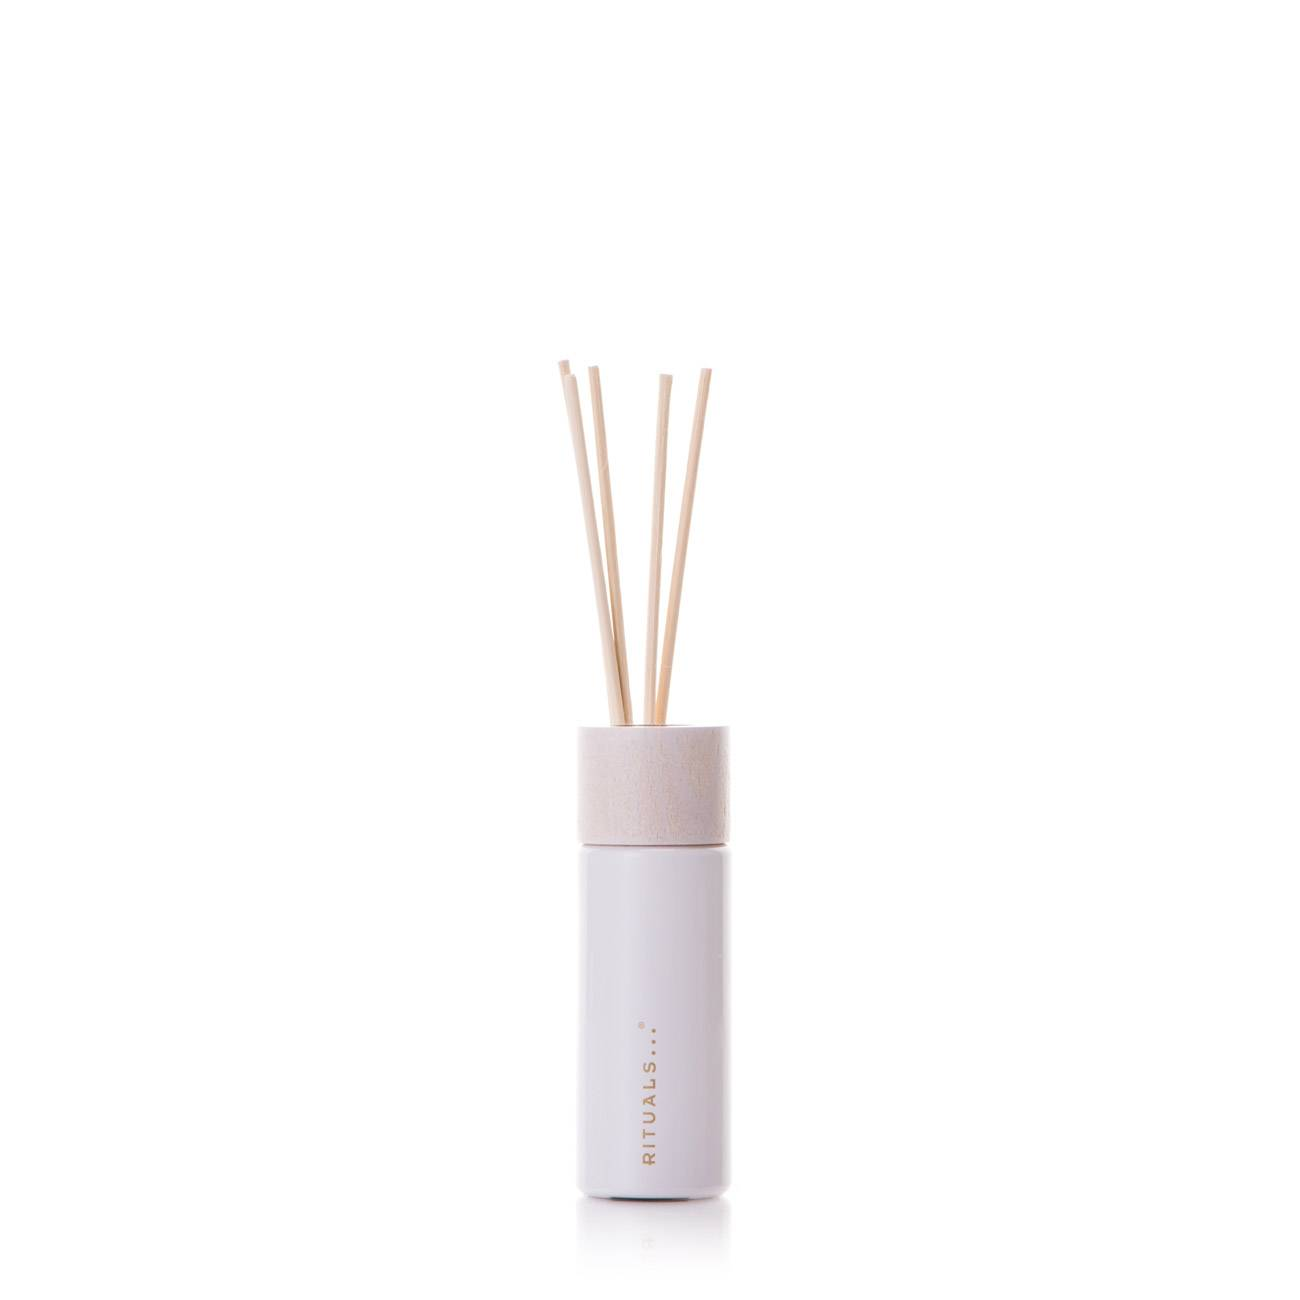 AYURVEDA MINI FRAGRANCE STICKS imagine produs